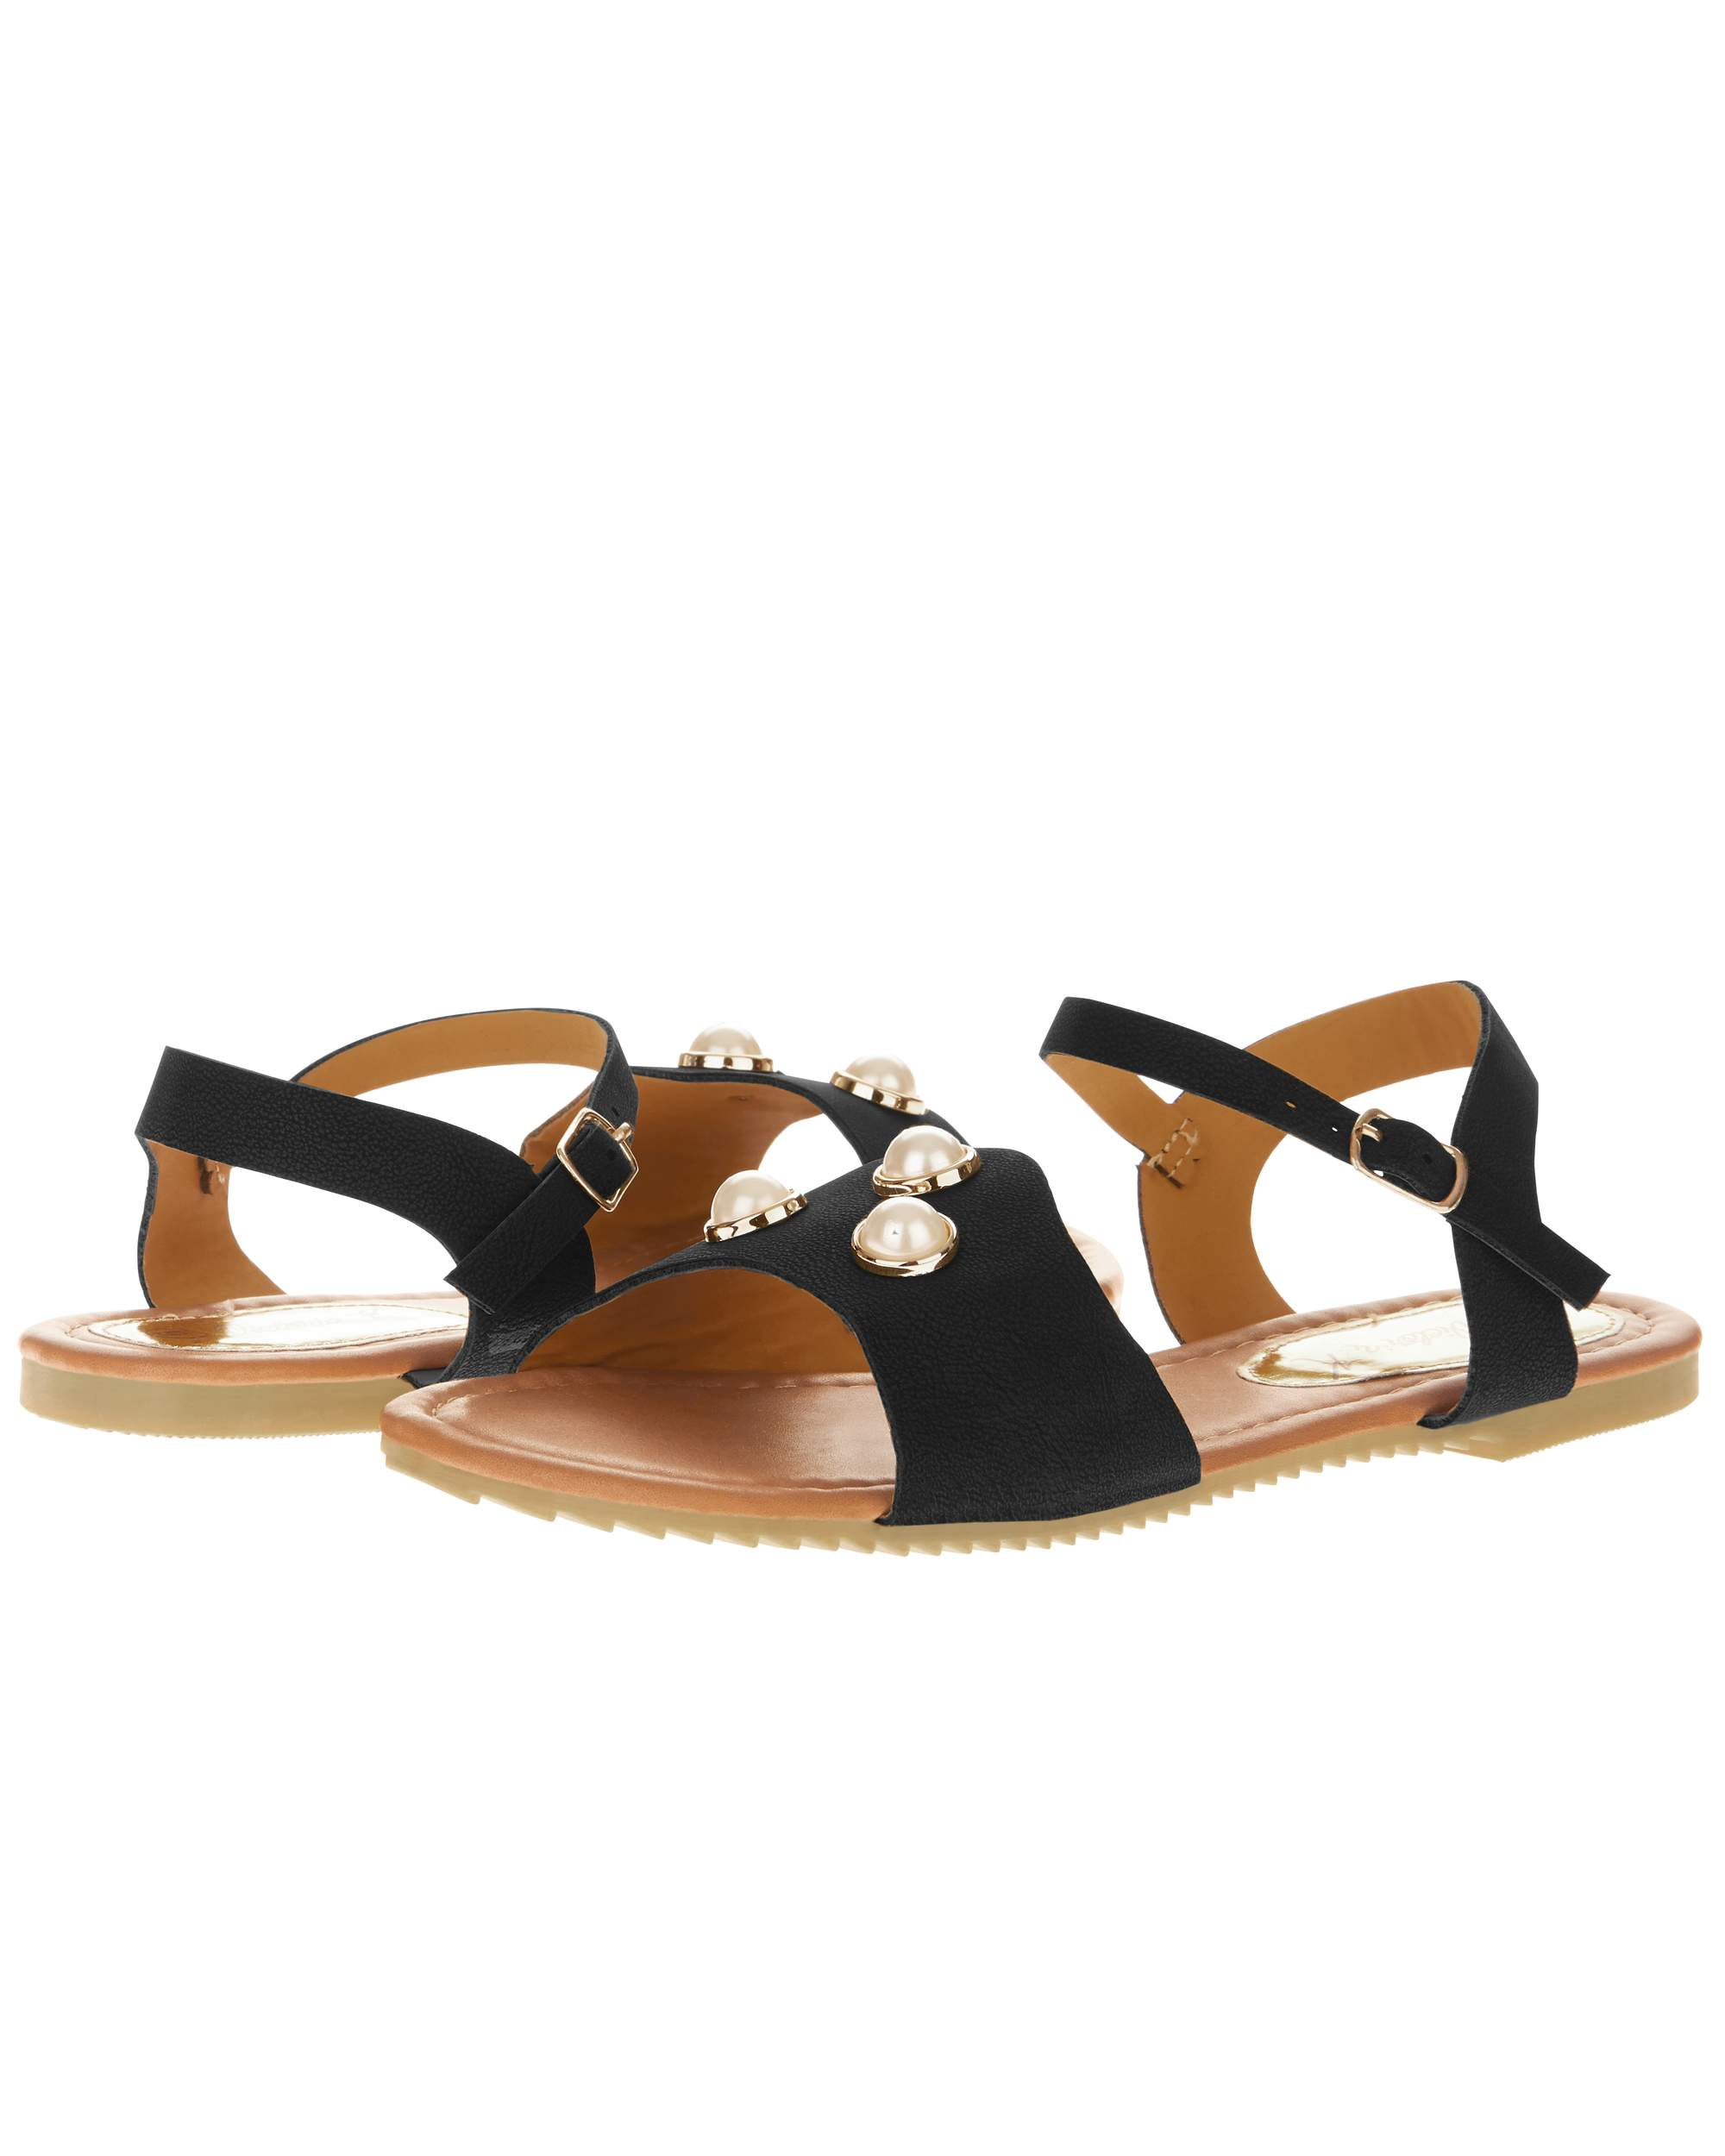 Victoria K Women's Three Pearls Sandals